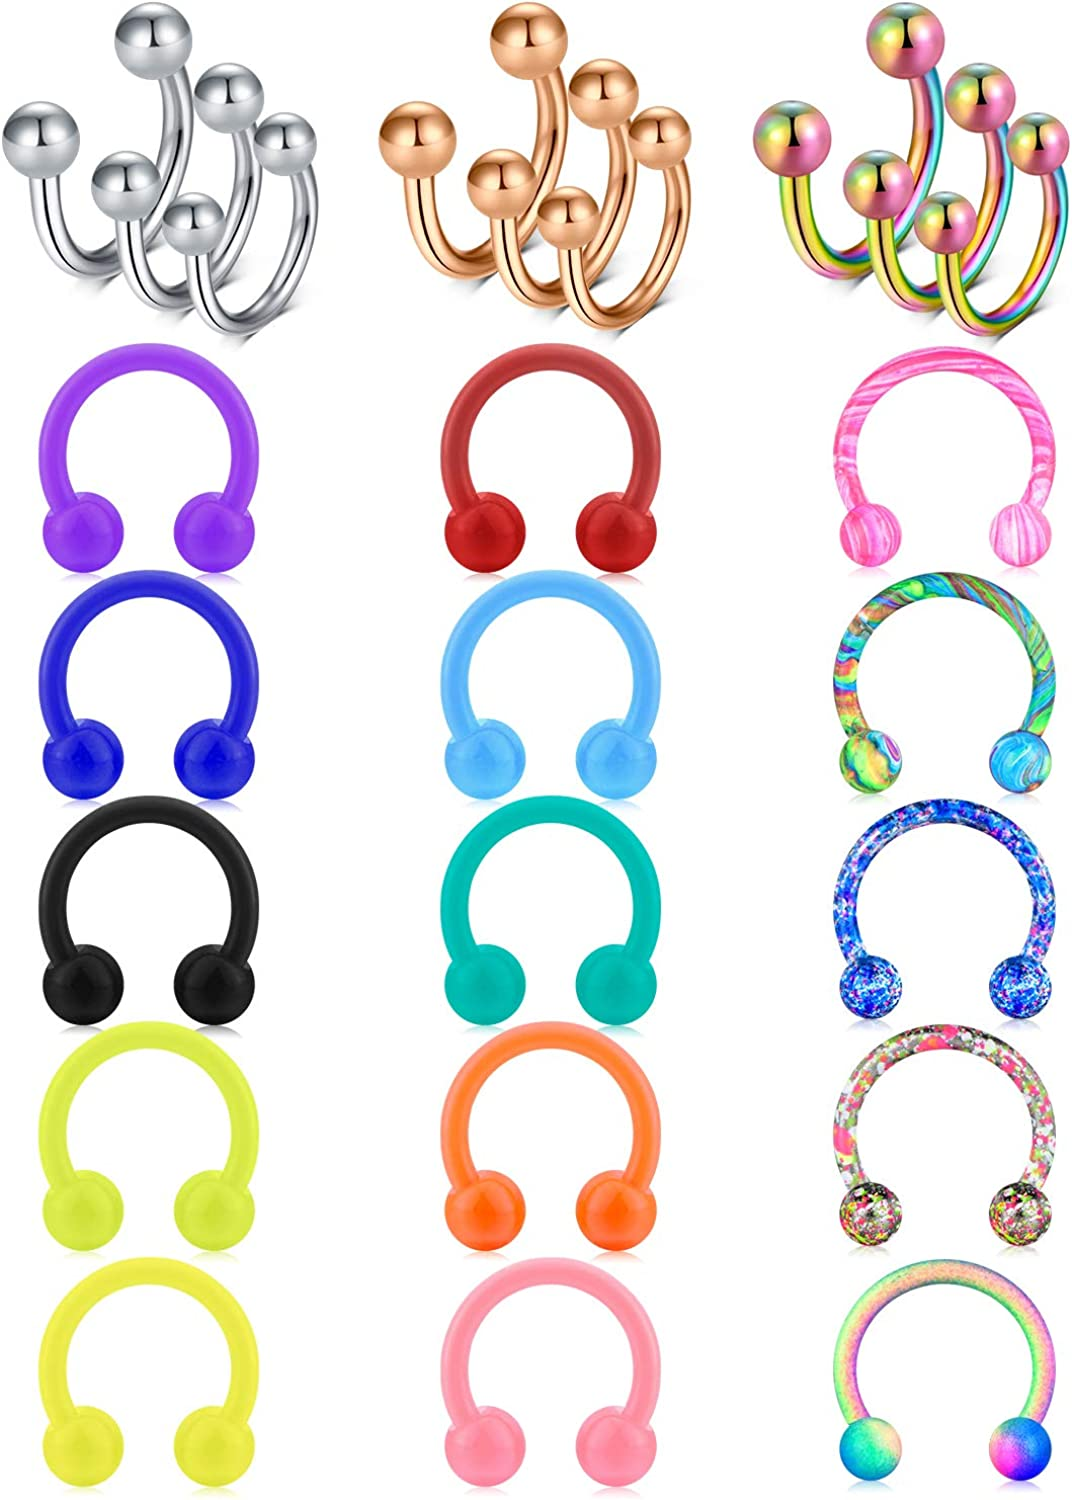 Zolure 16G Septum Our shop Award most popular Rings Piercing Steel Stainless Hoesesh Jewelry